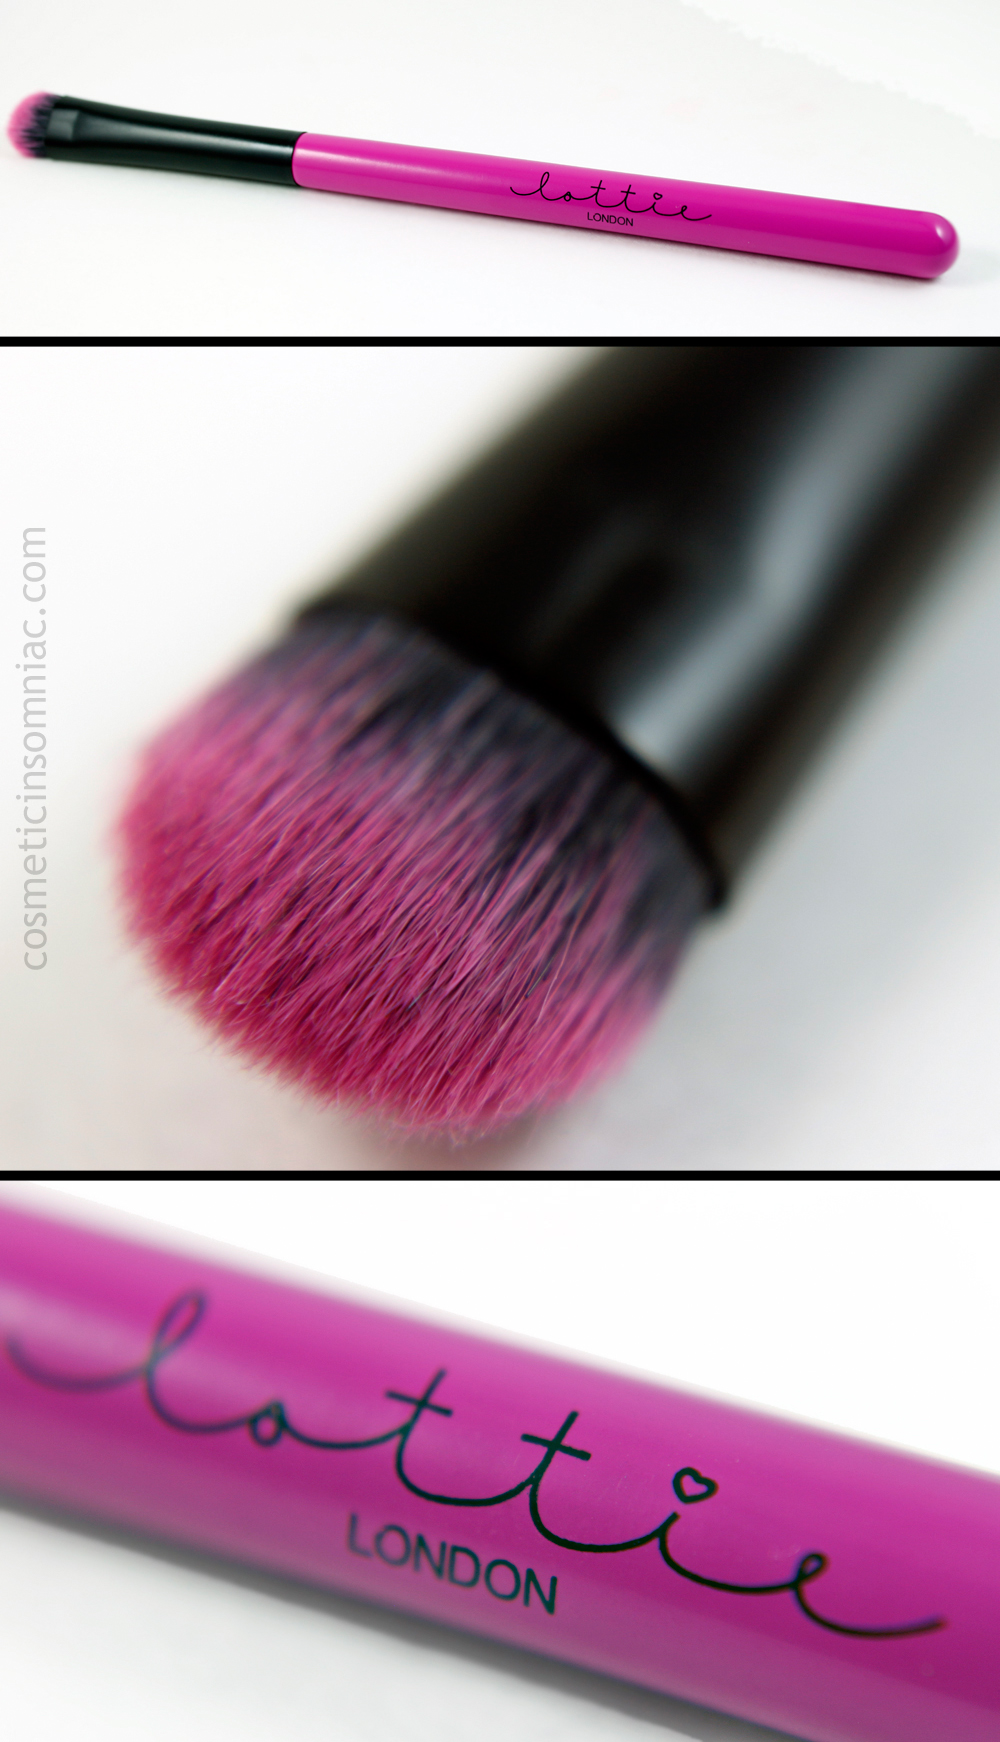 Lottie London - Perfectly Precise Small Eyeshadow Brush  (click to enlarge)